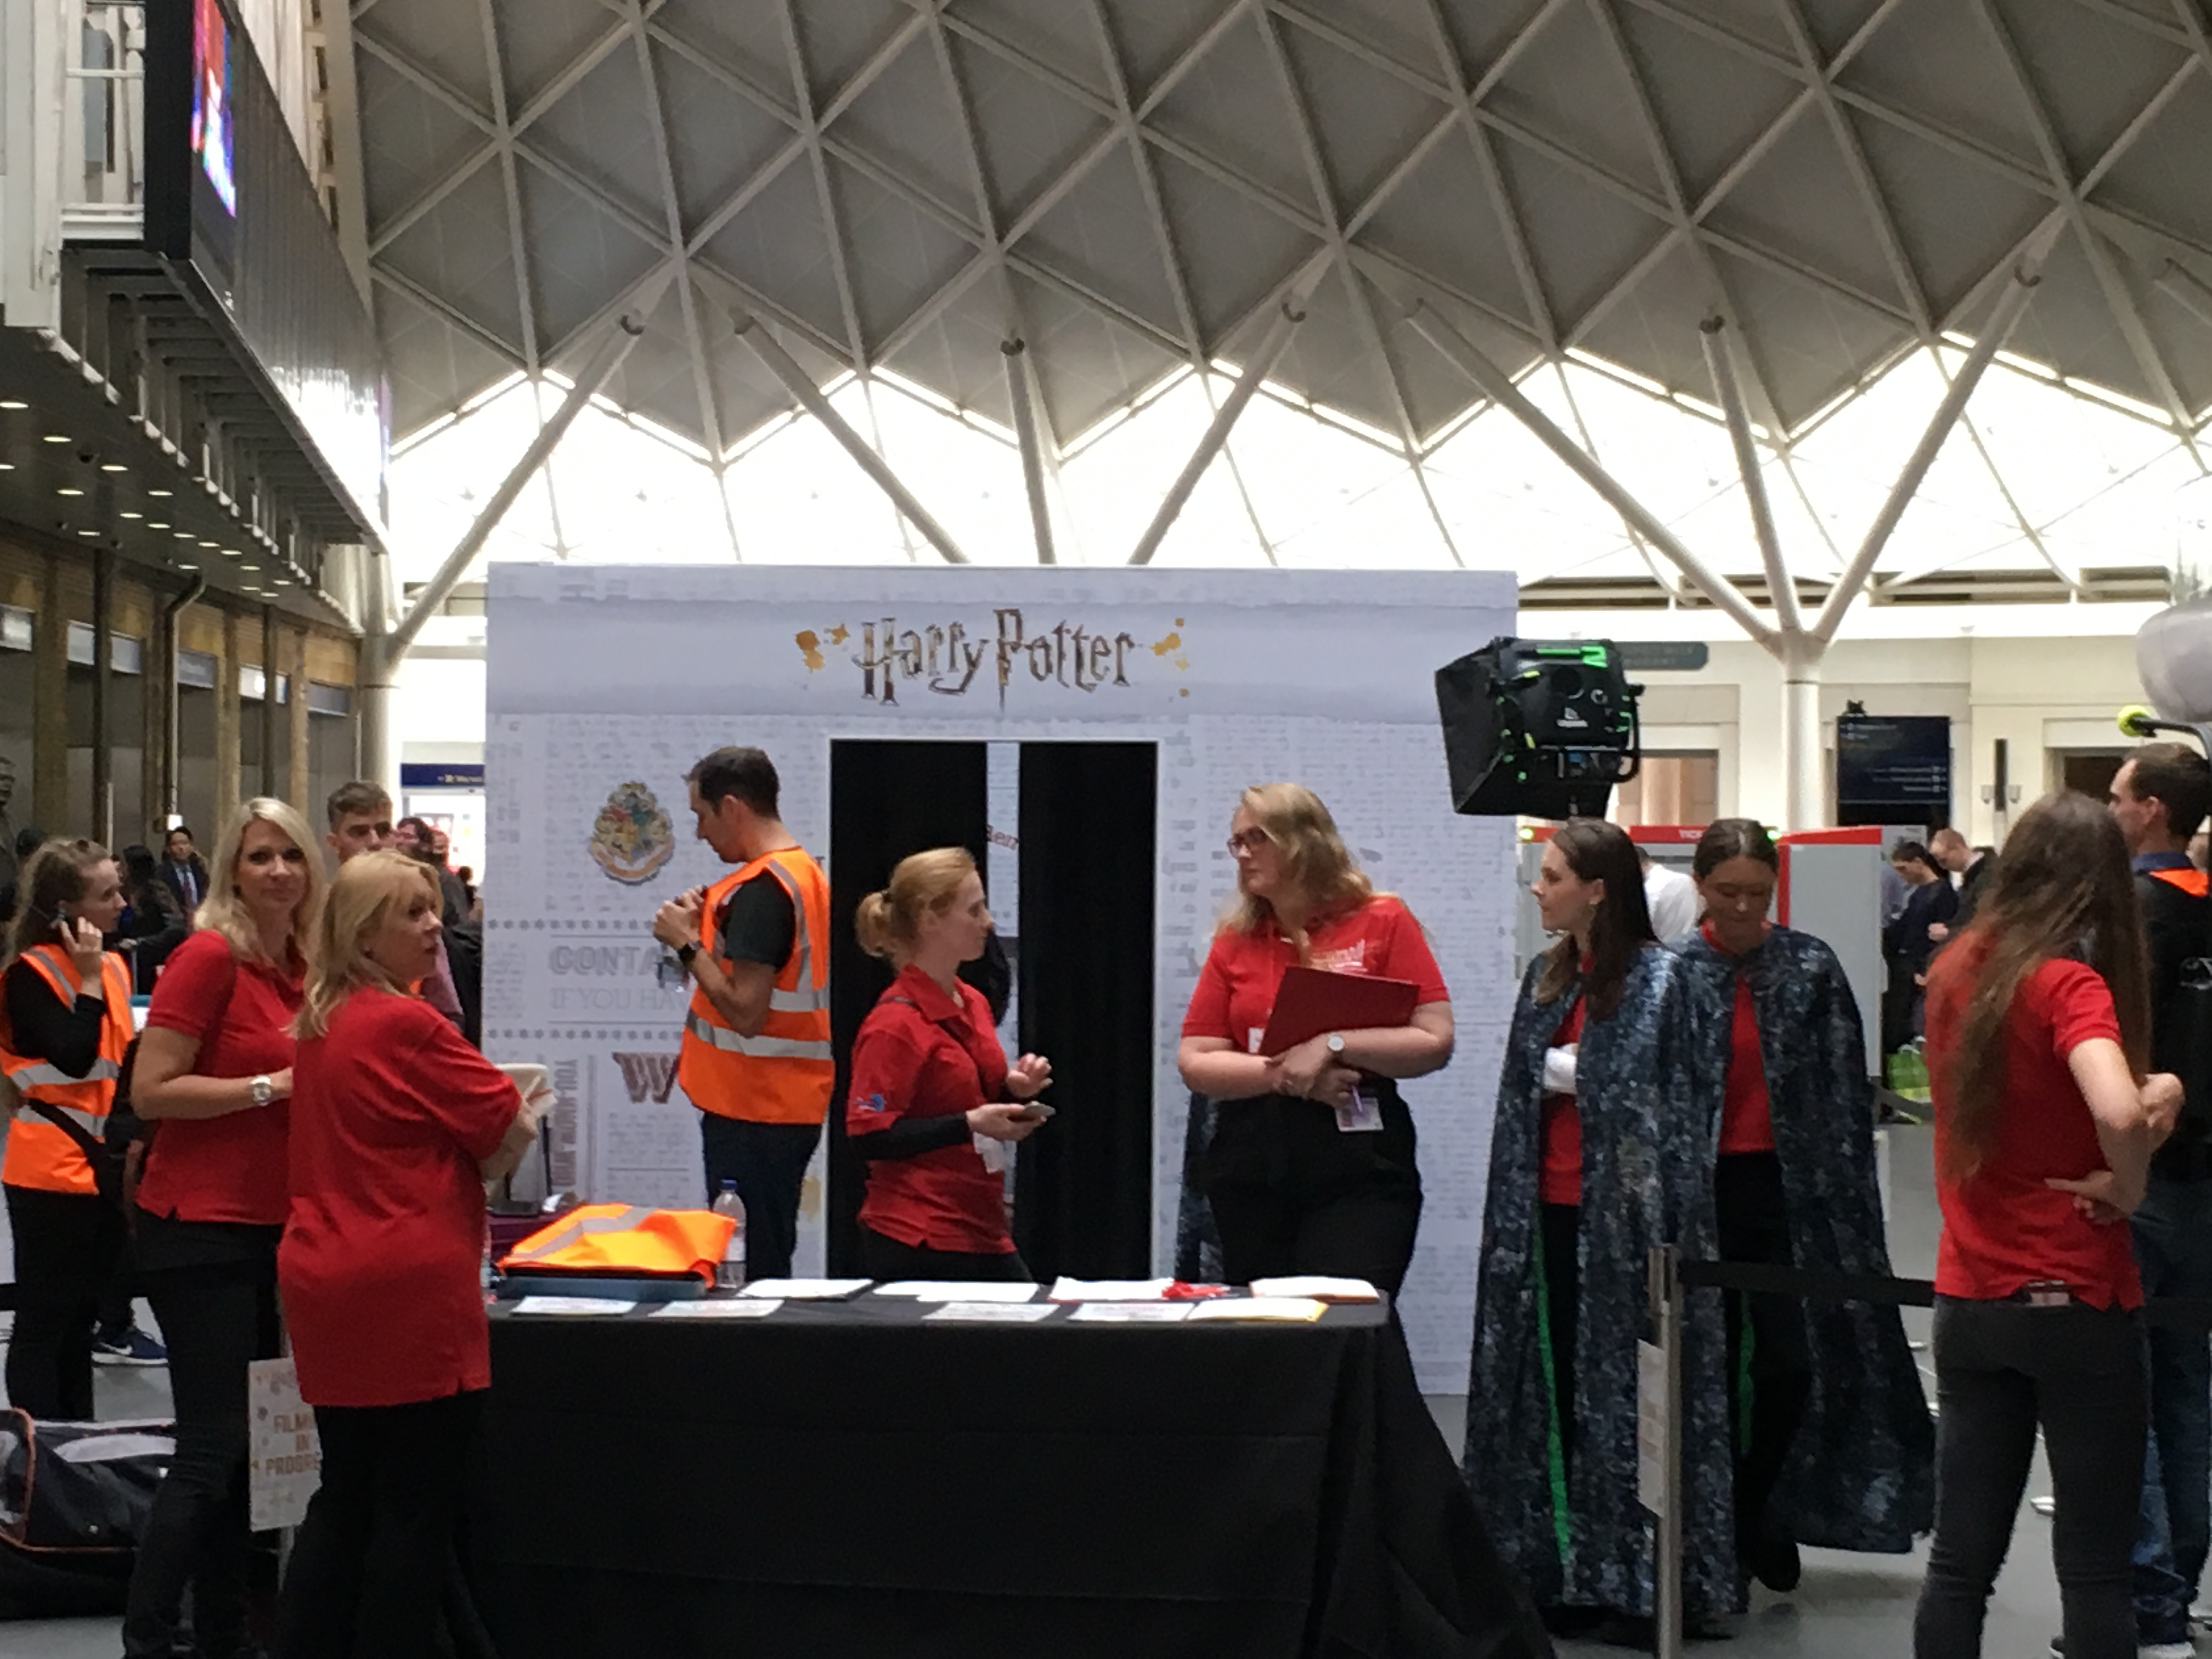 Wow! Stuff invisibility cloak launch at King's Cross – hustle and bustle around the booth on press day